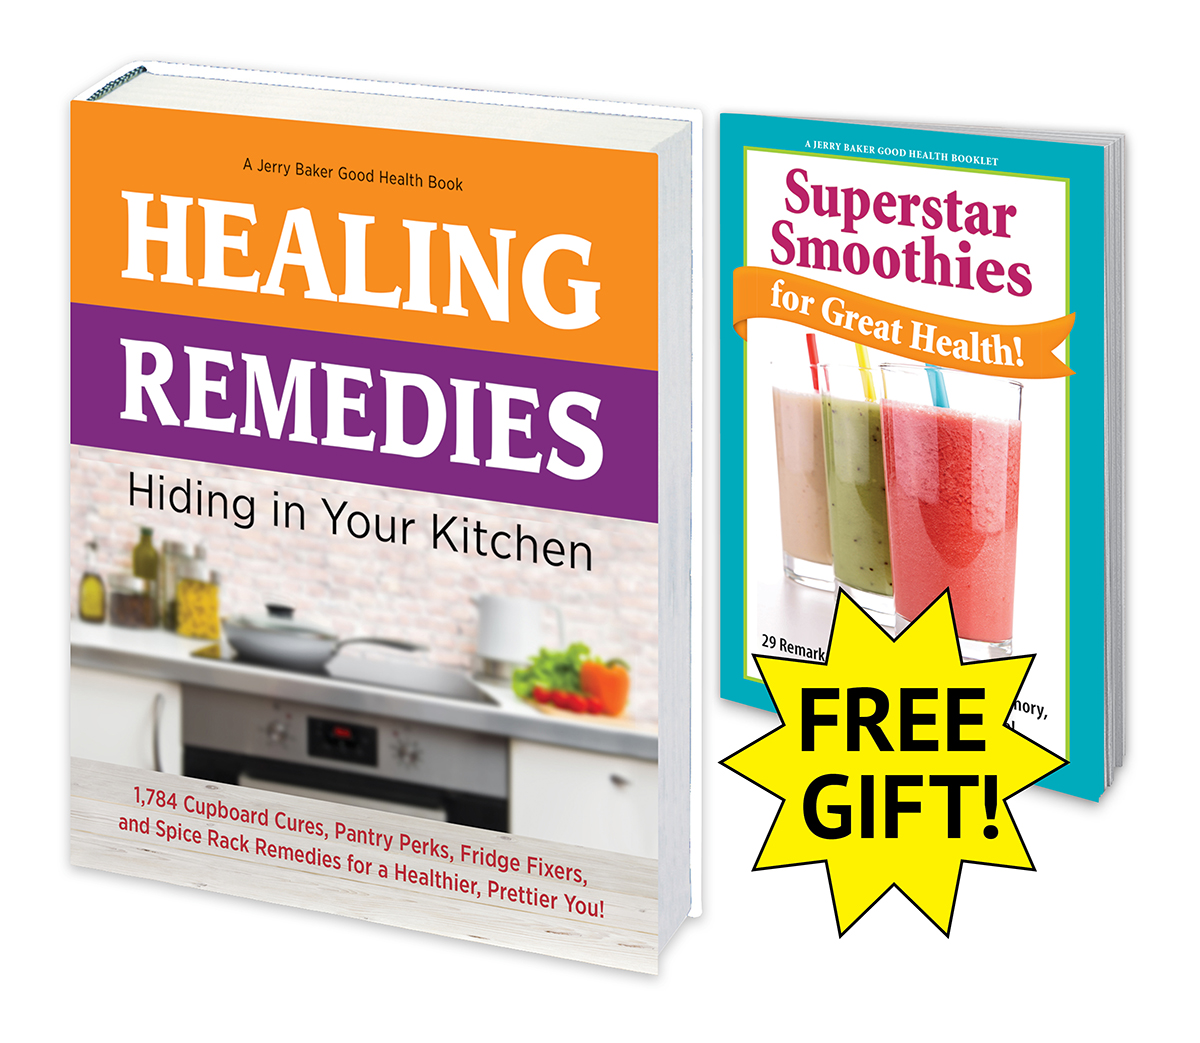 Healing Remedies Hiding In Your Kitchen